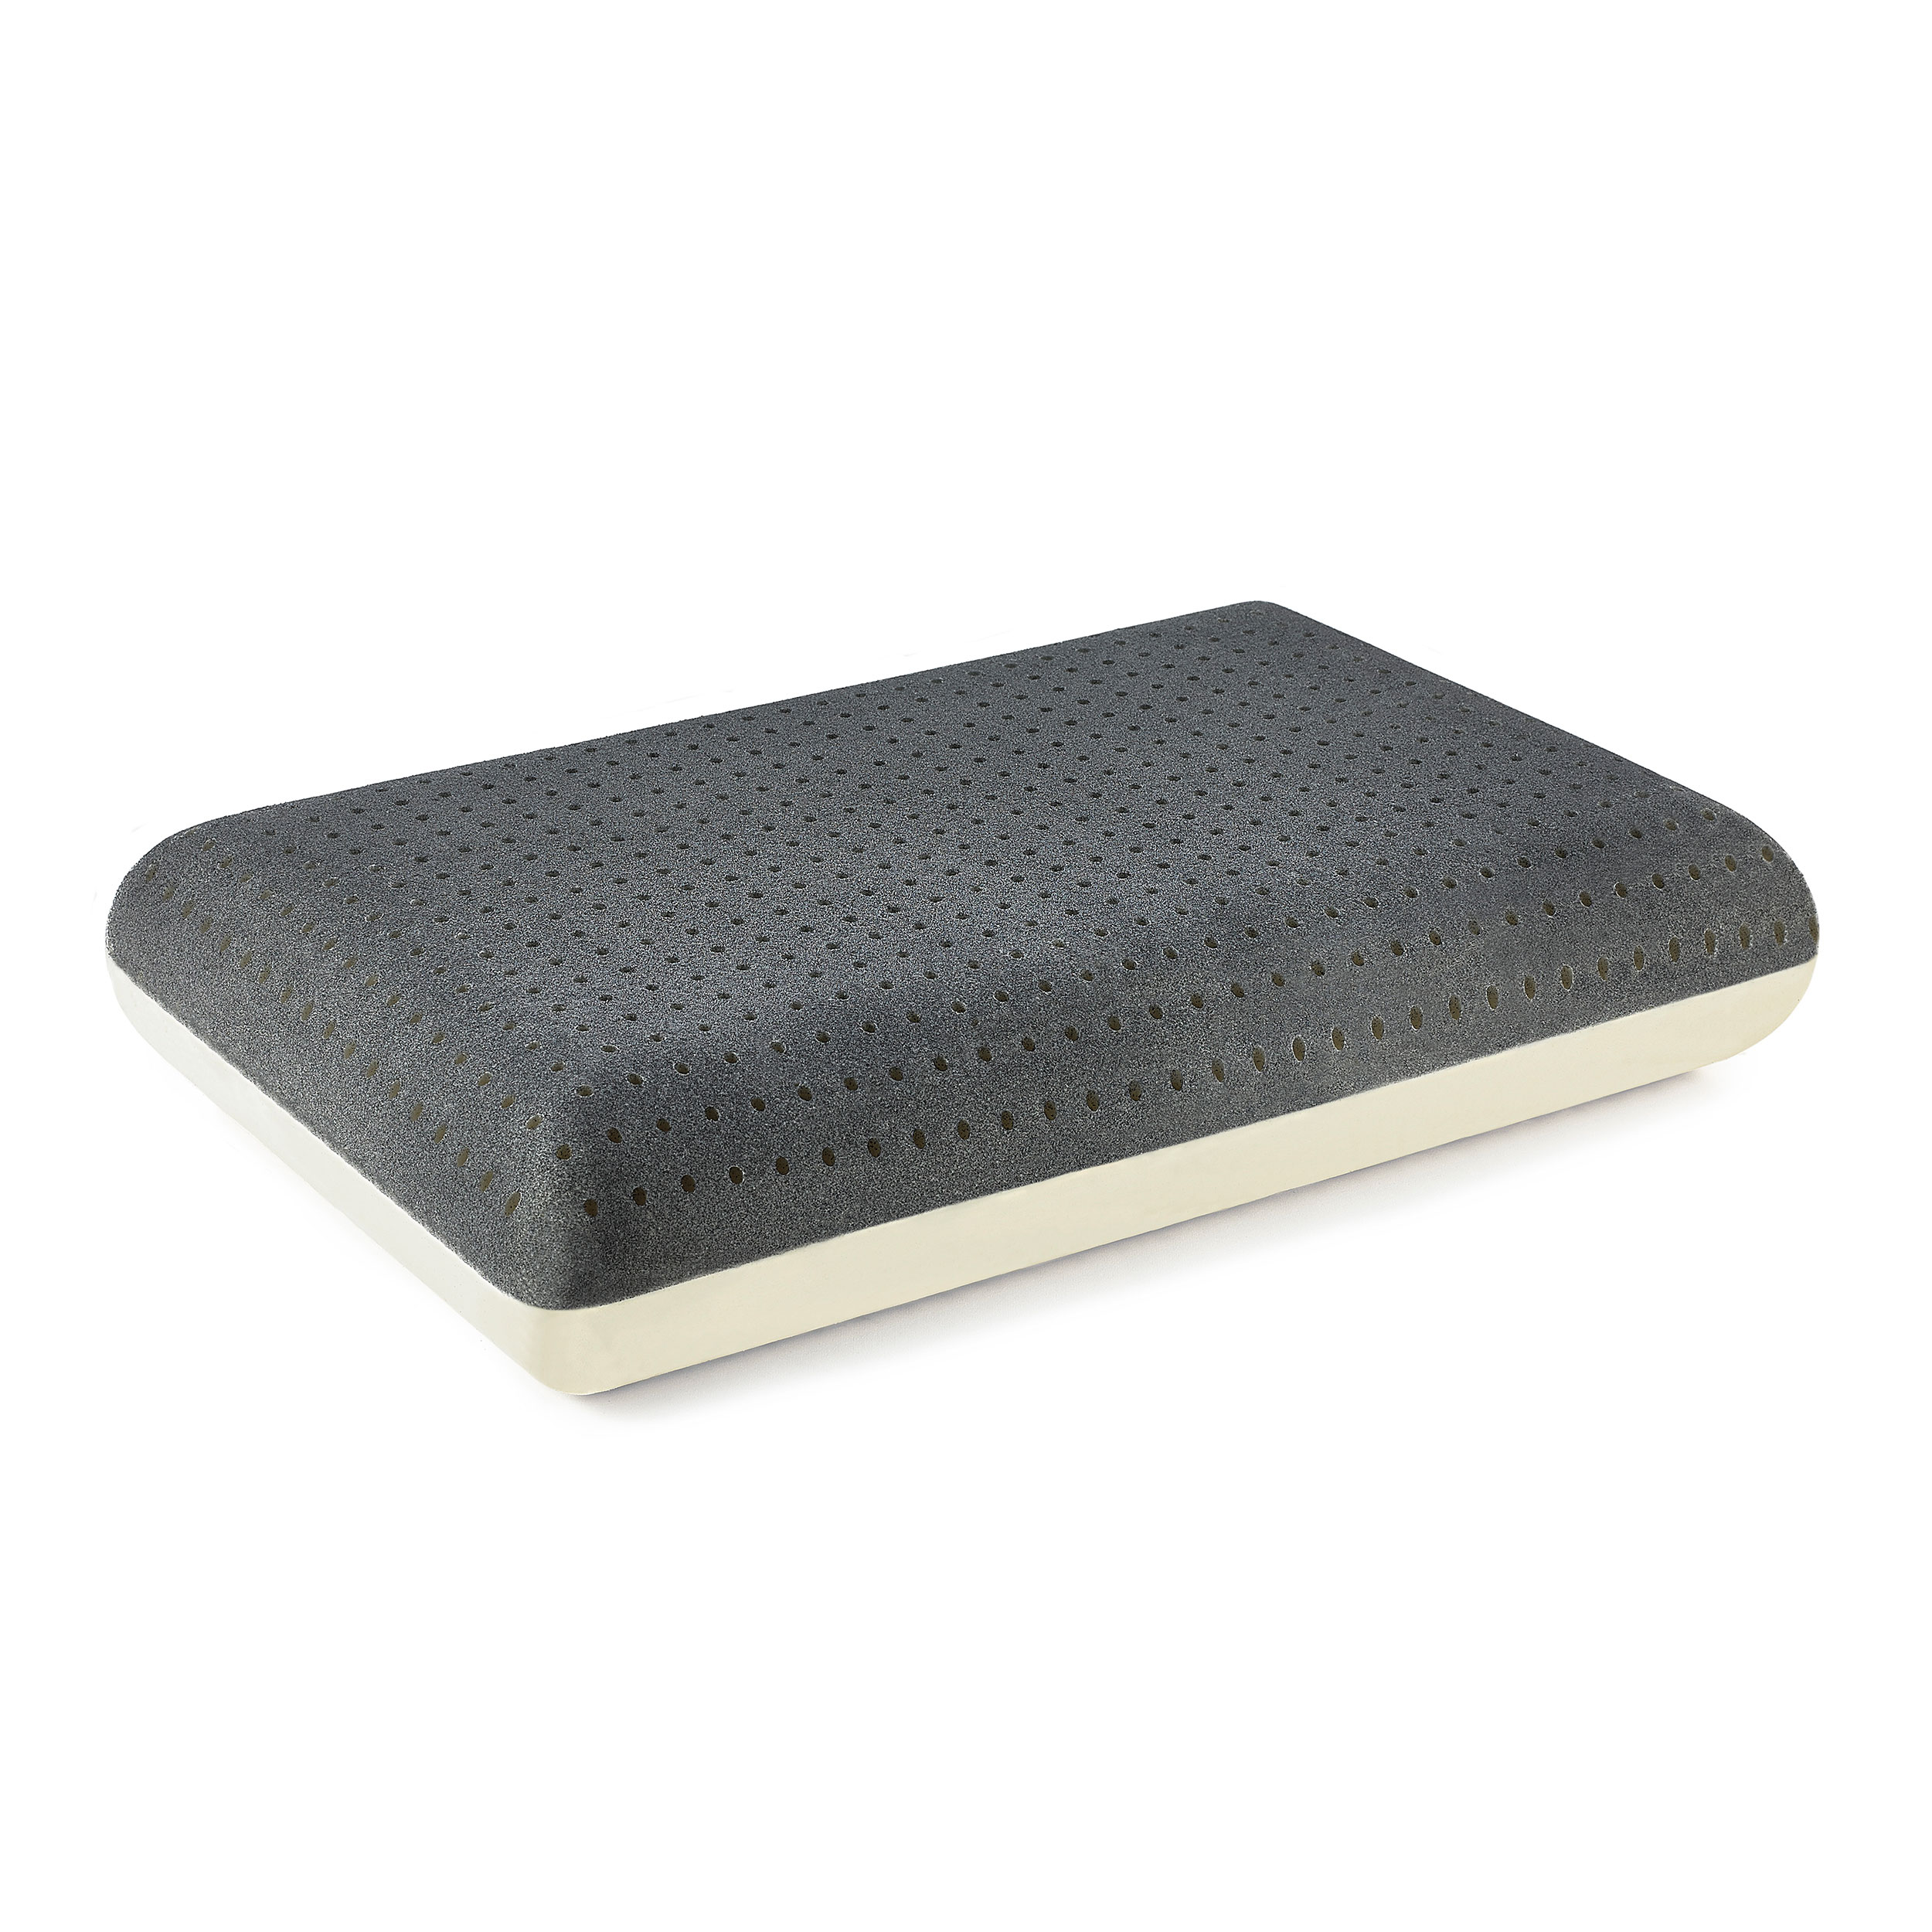 Gel Infused Memory Foam Pillow Great Sleep Silver Gel Coolflow Memory Foam Pillow Great Sleep